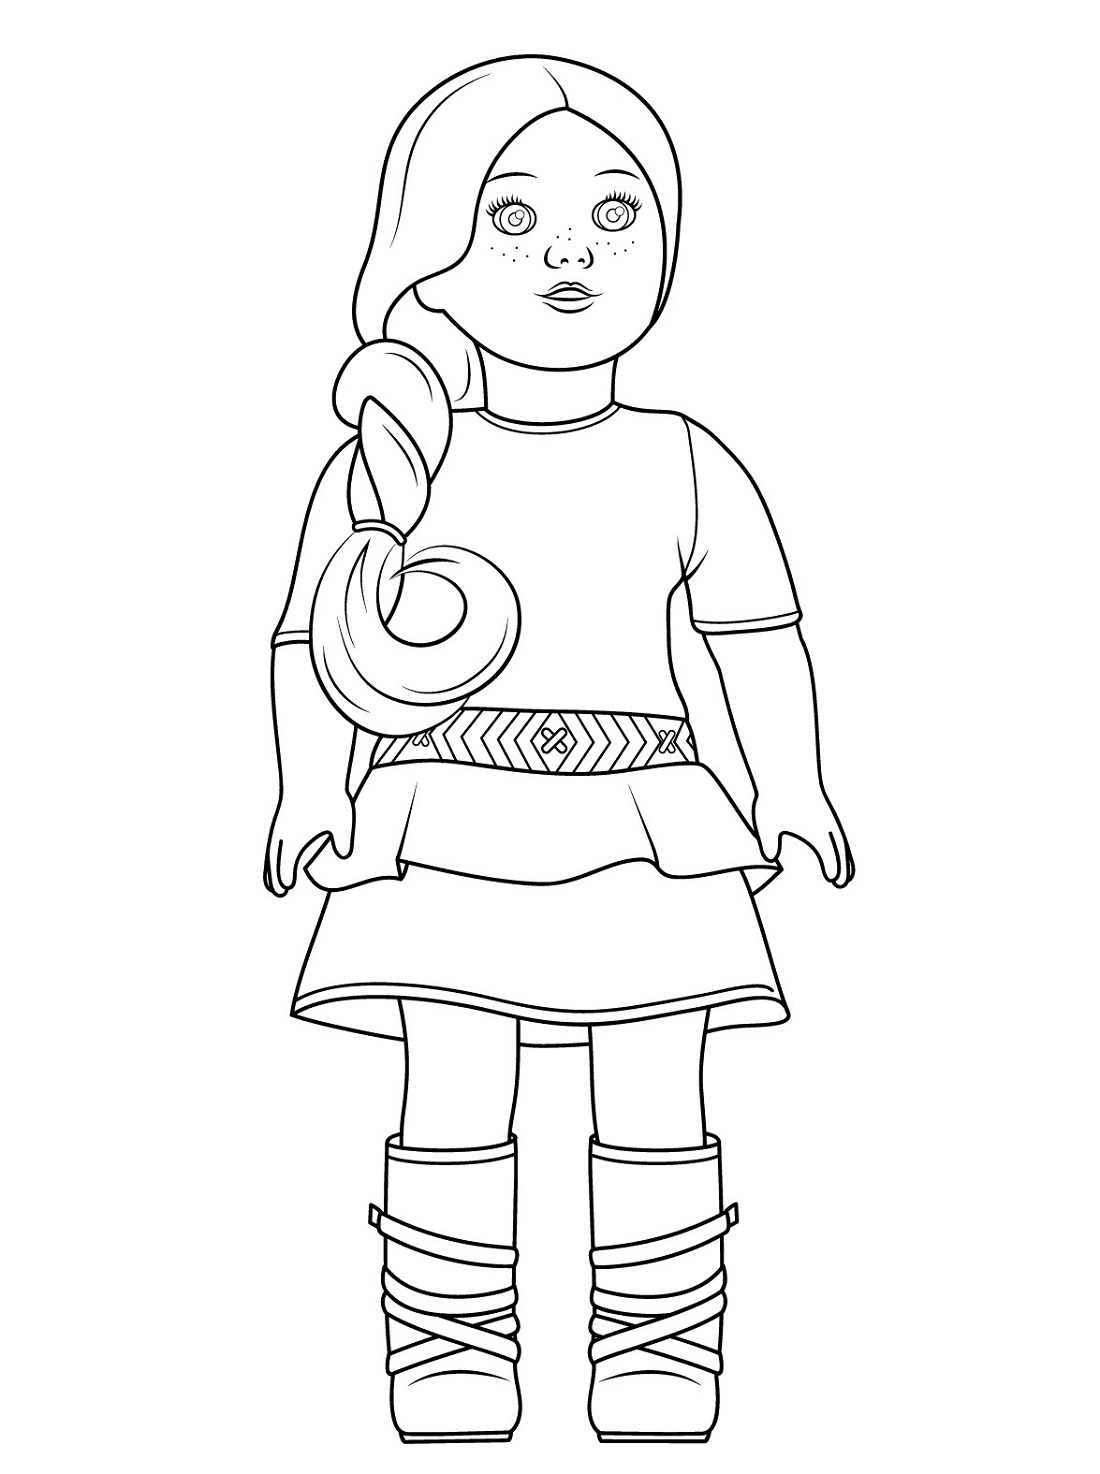 american girl doll coloring page american girl doll julie coloring page free printable page american coloring girl doll